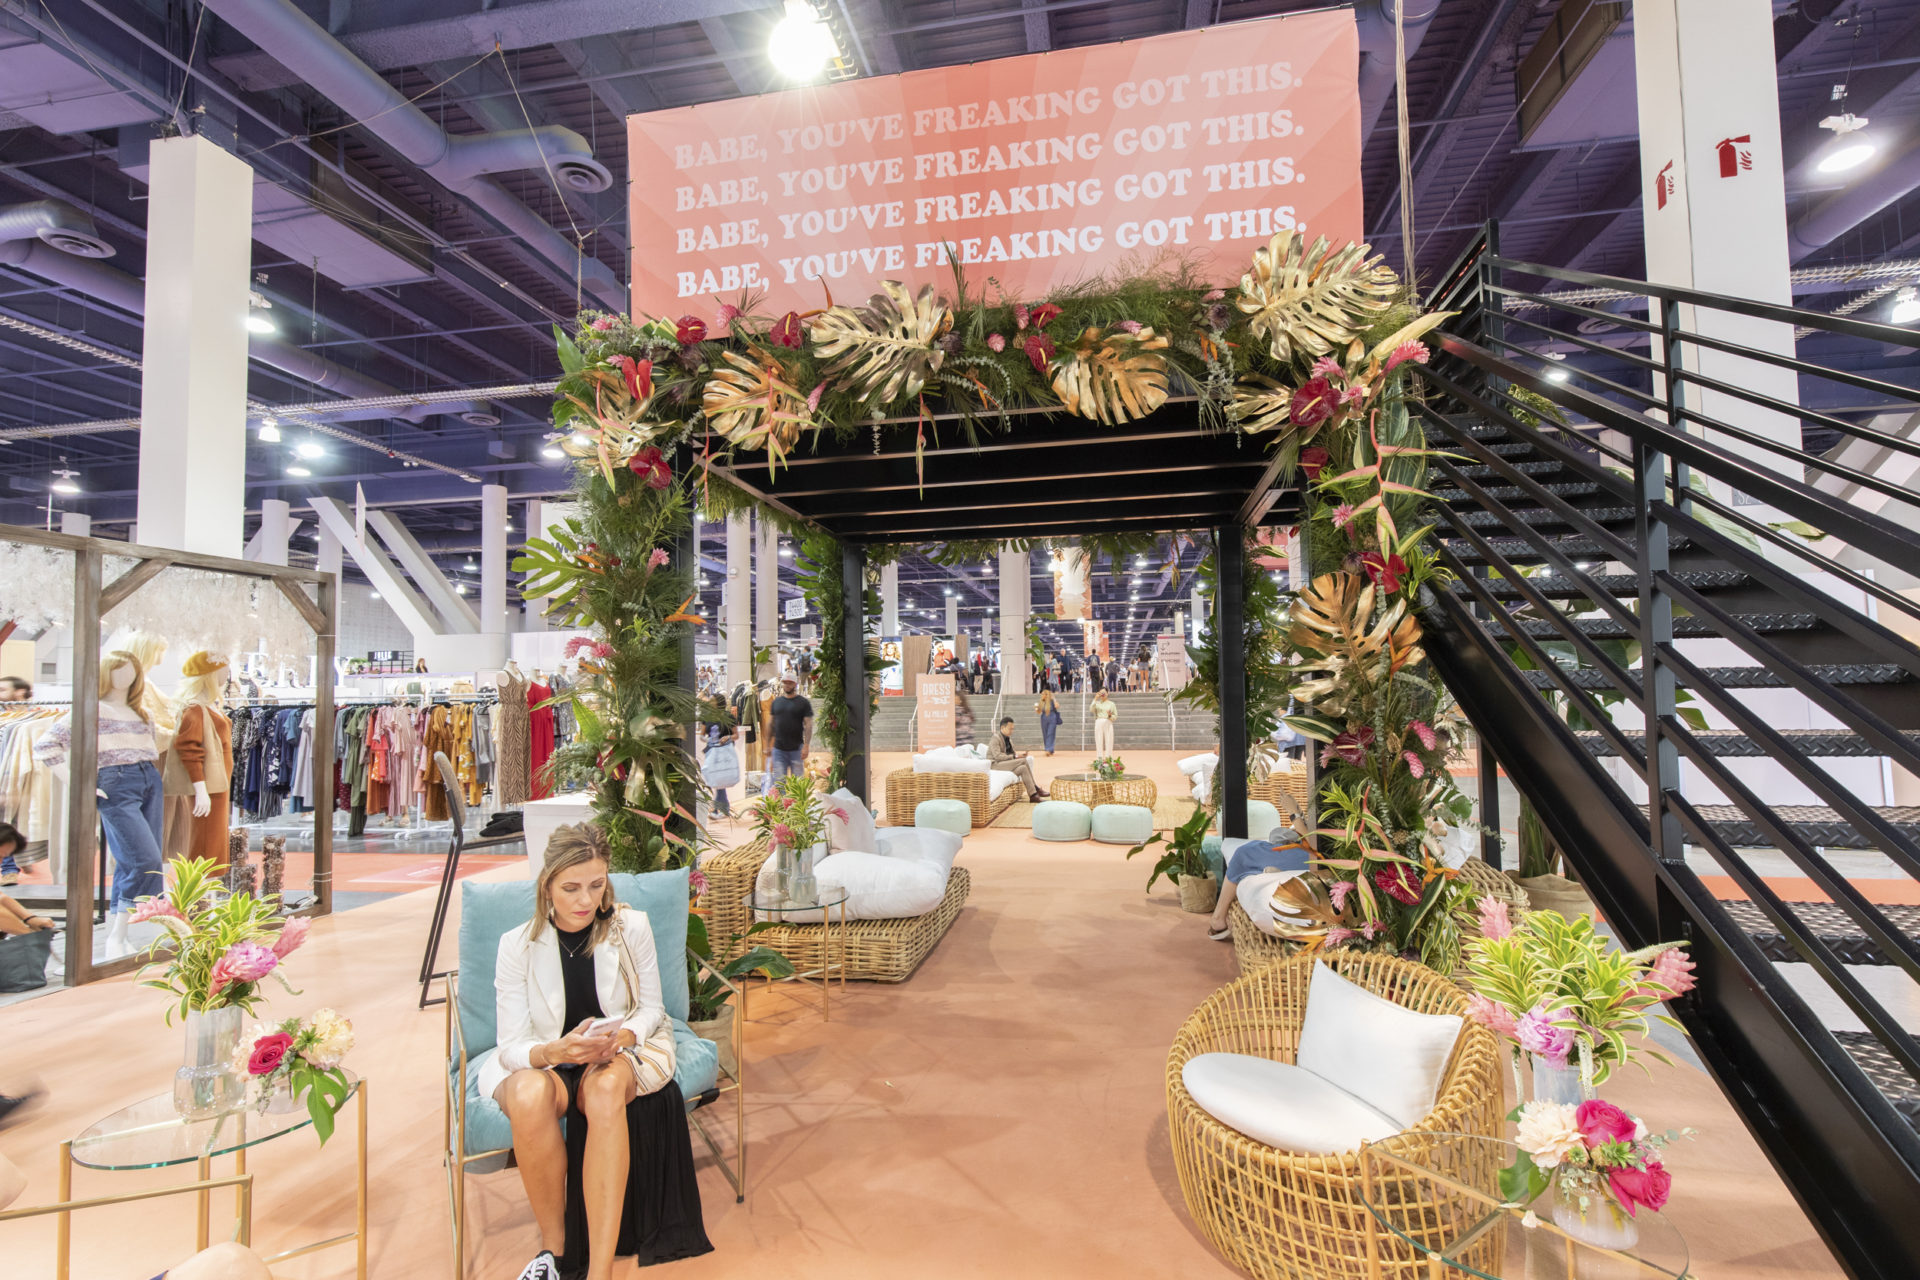 Plant rental arch display at a trade show.